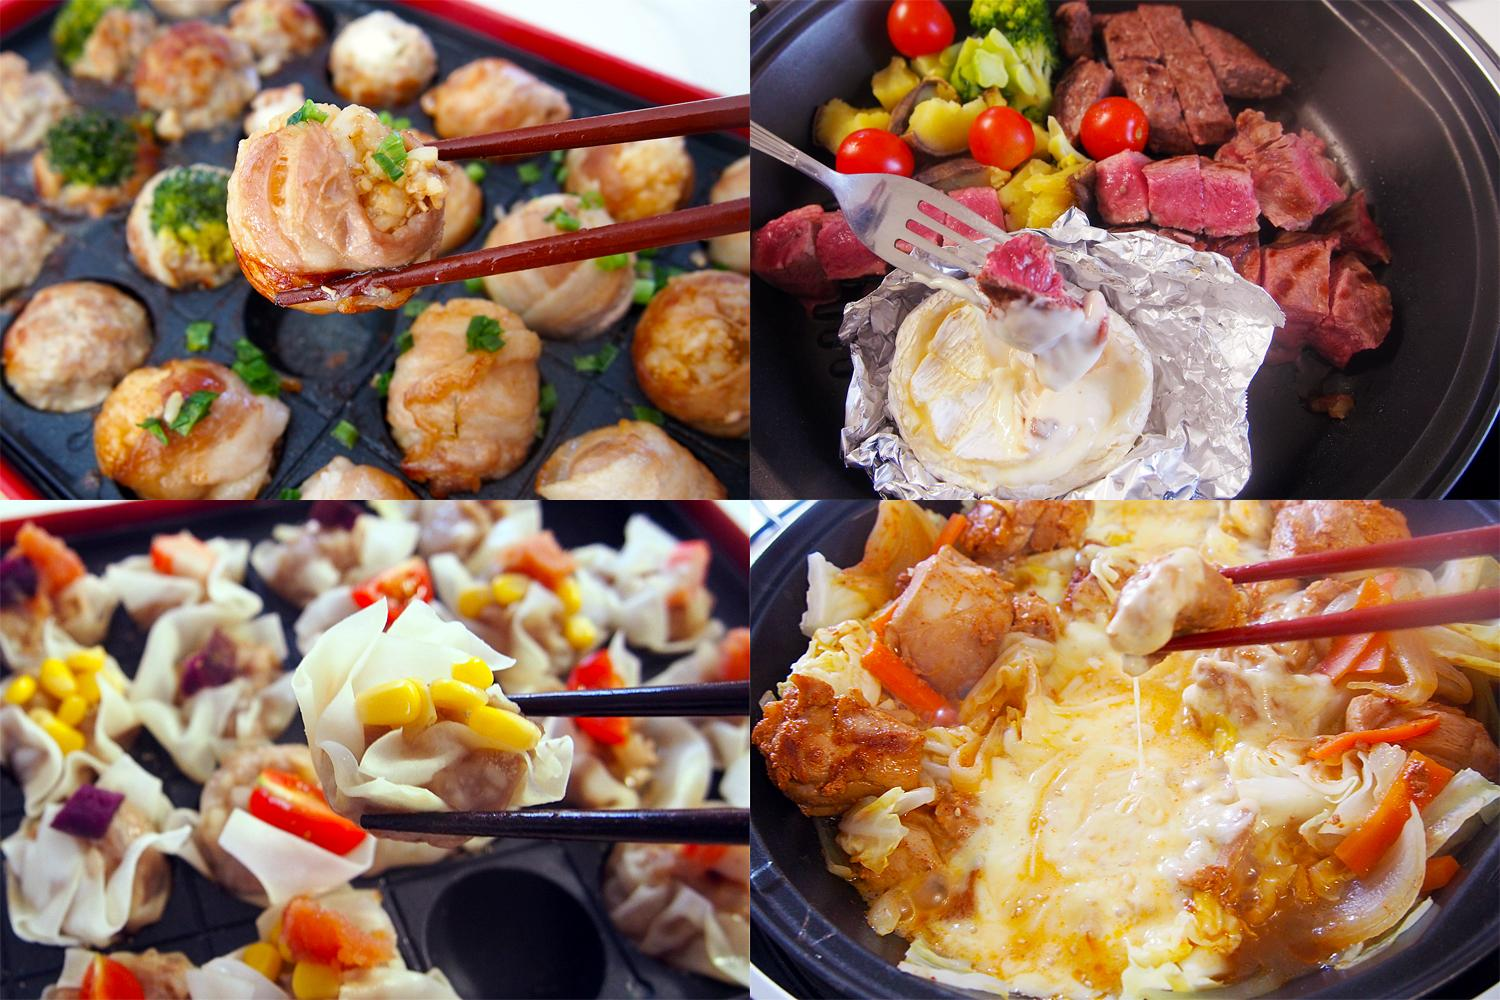 MAKE MAIN AND SIDE DISHES AT THE SAME TIME! EASY MEAT RECIPES USING A HOT PLATE